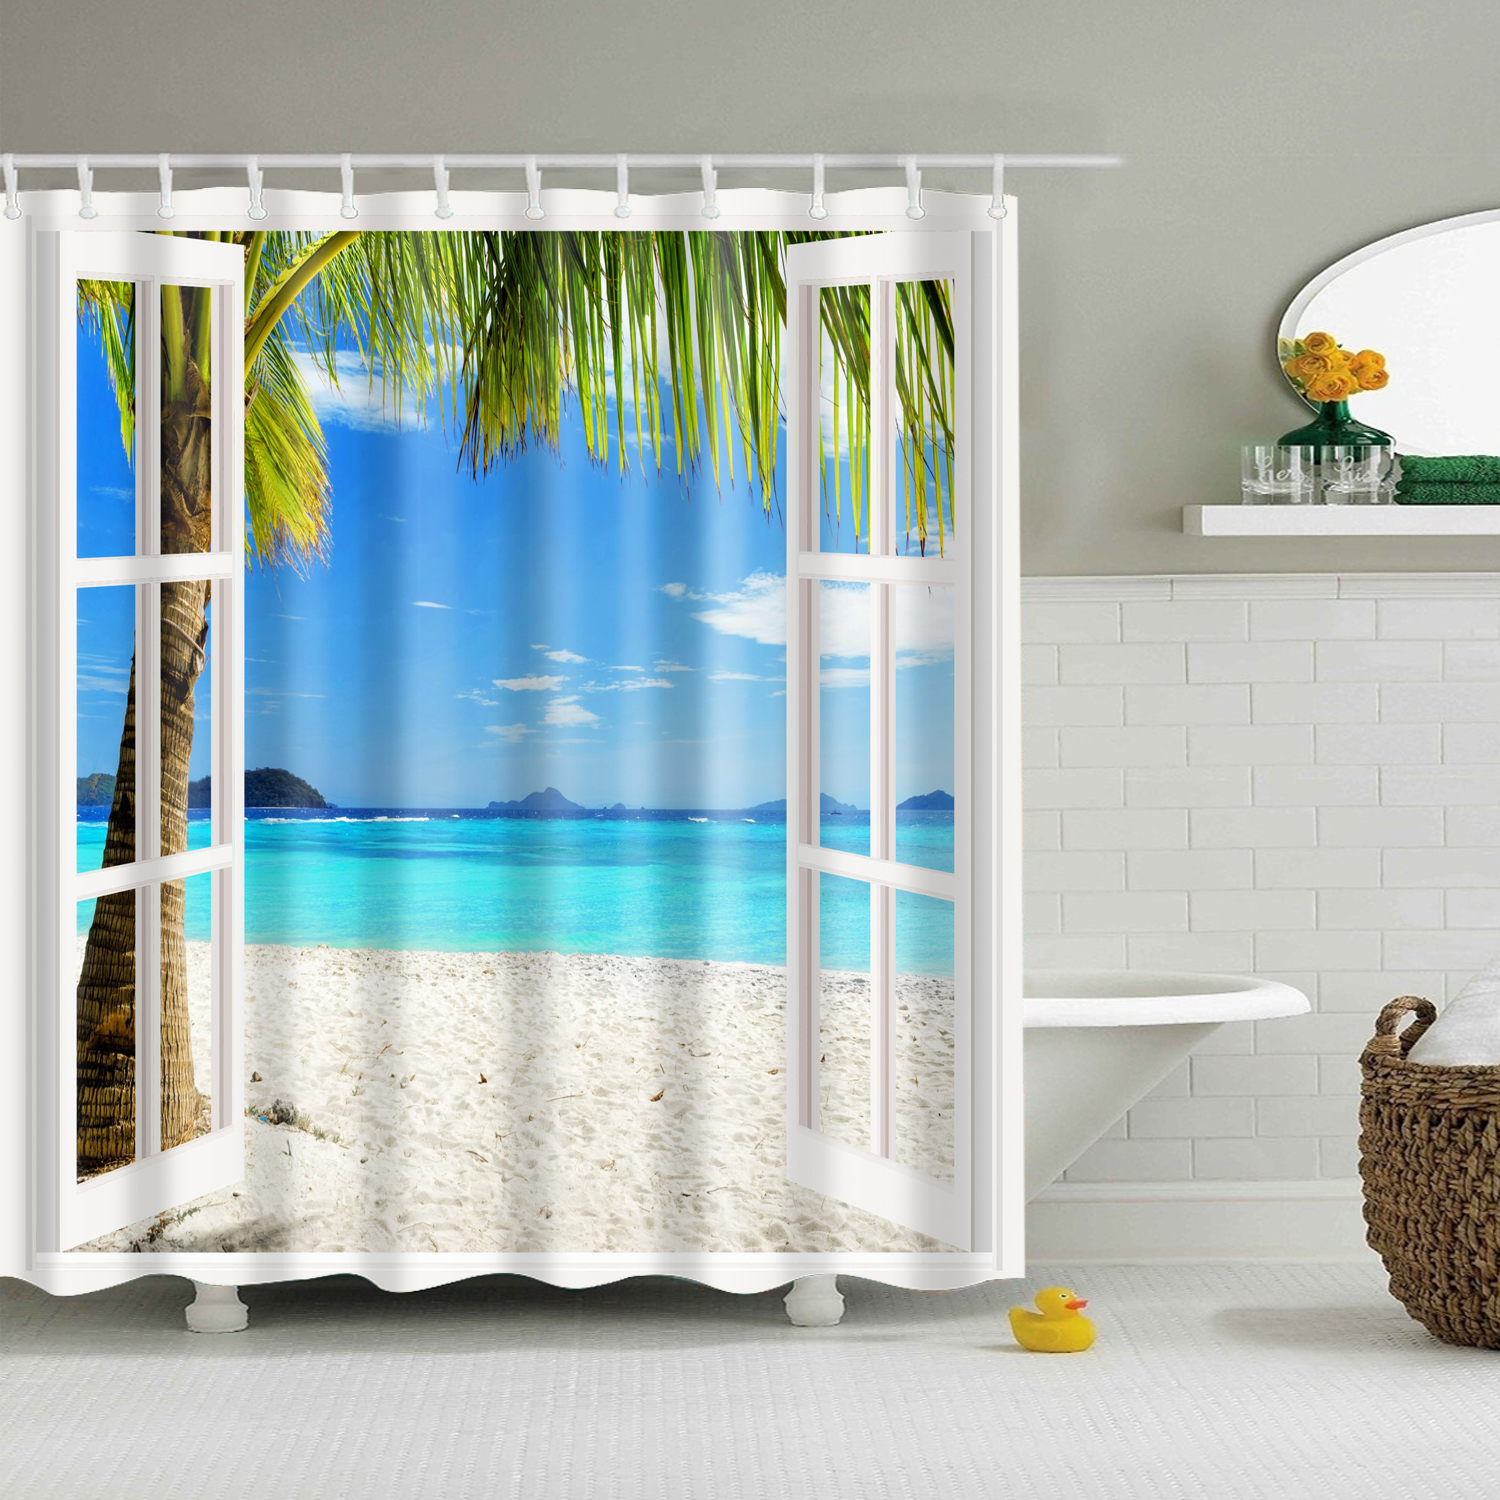 Palm tree and tropical beach Shower Curtain Bathroom Fabric /& 12hooks 71*71inch